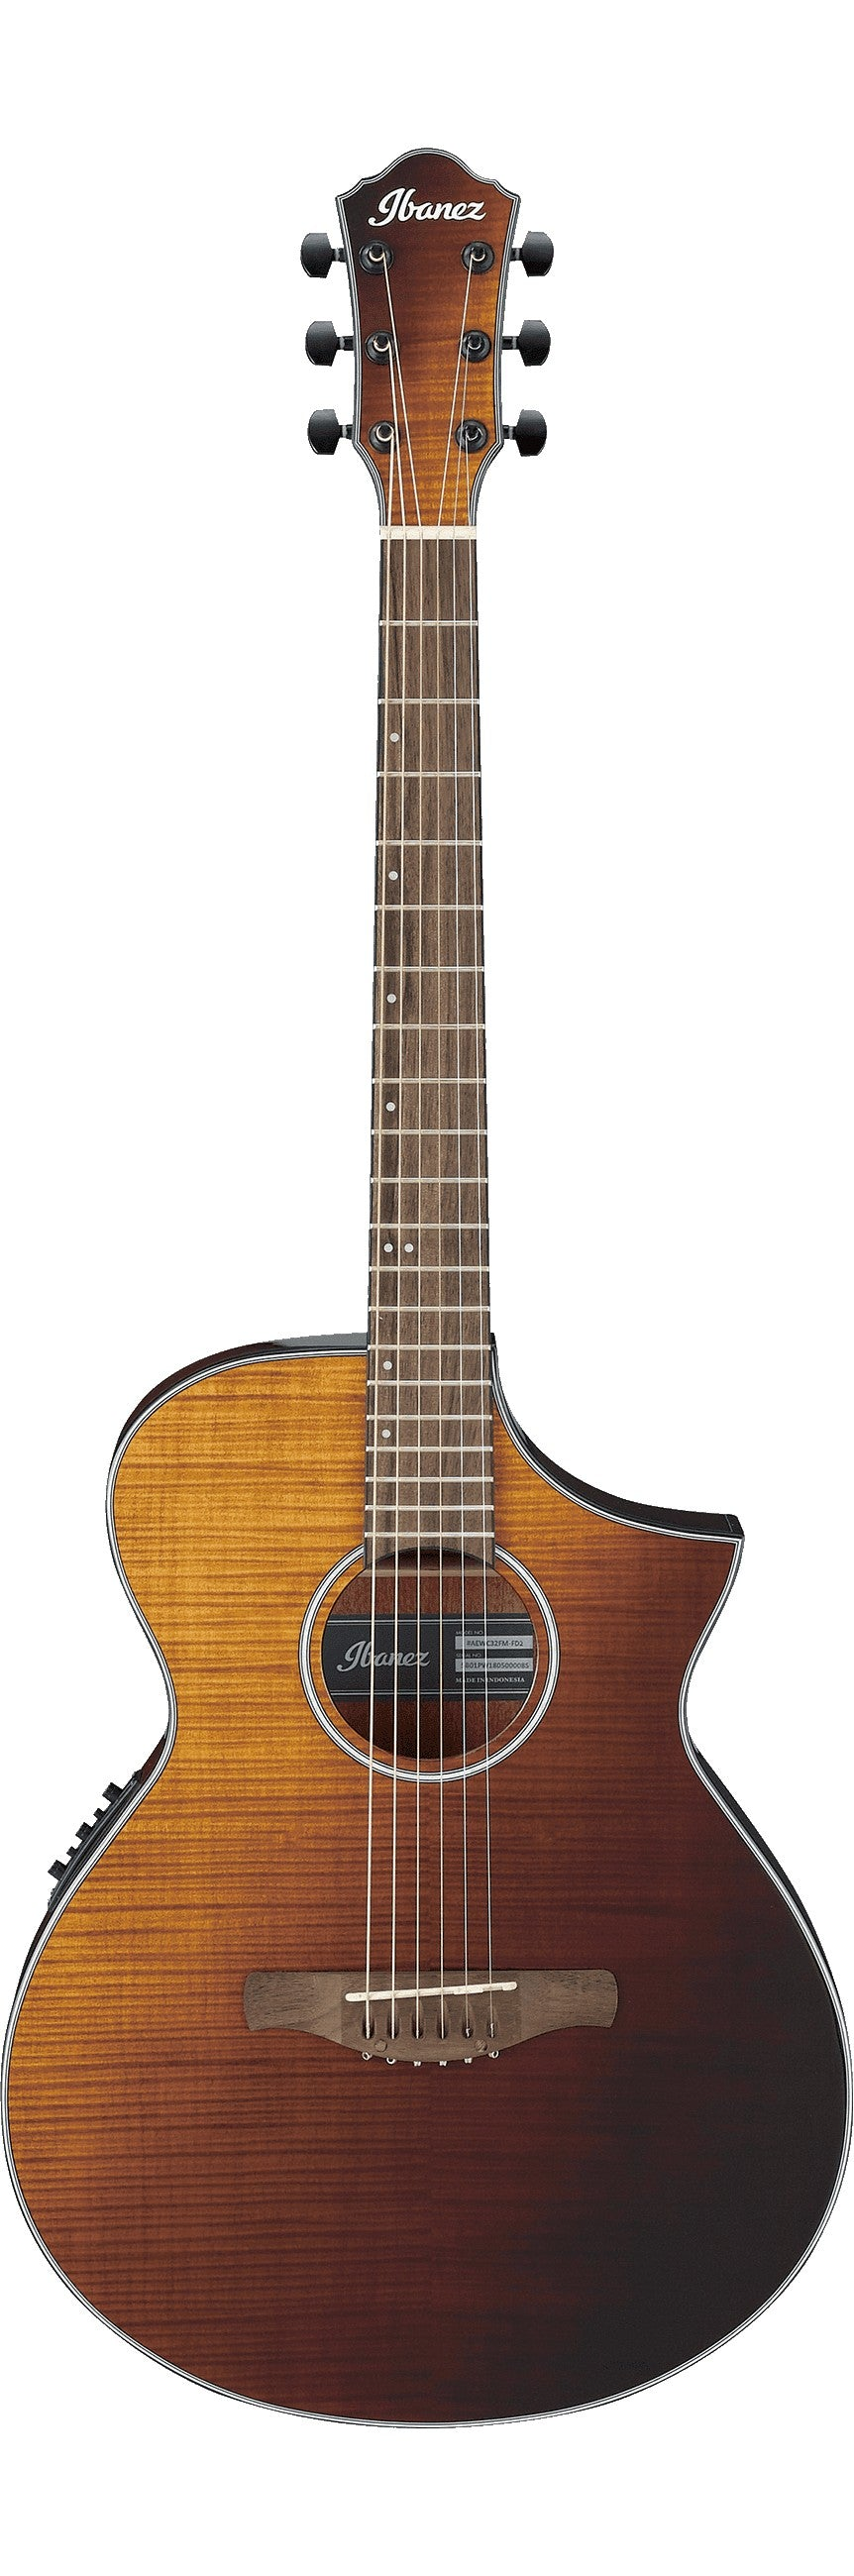 Ibanez AEWC32FM Thinline Acoustic Electric Guitar